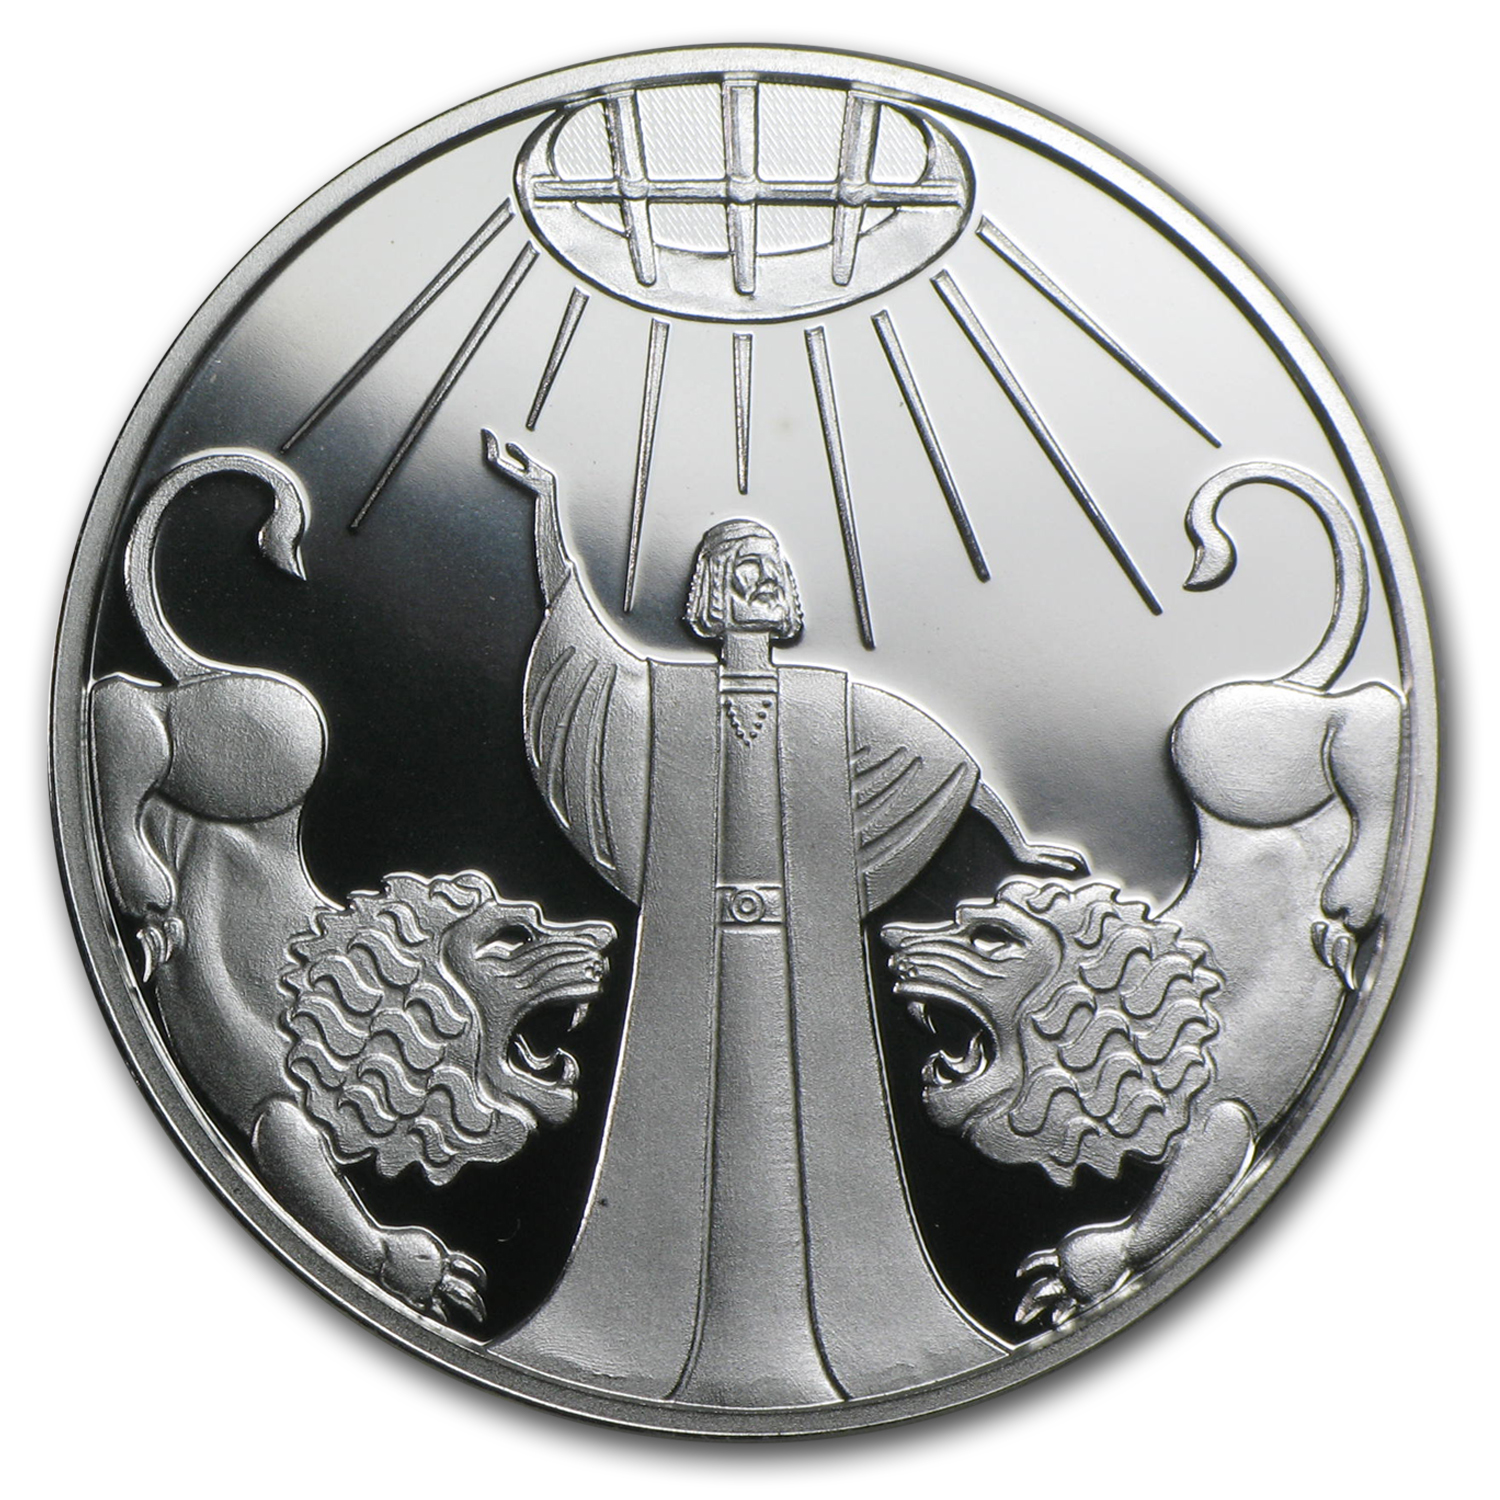 2012 Israel Silver 1 NIS Daniel in the Lion's Den Proof-Like